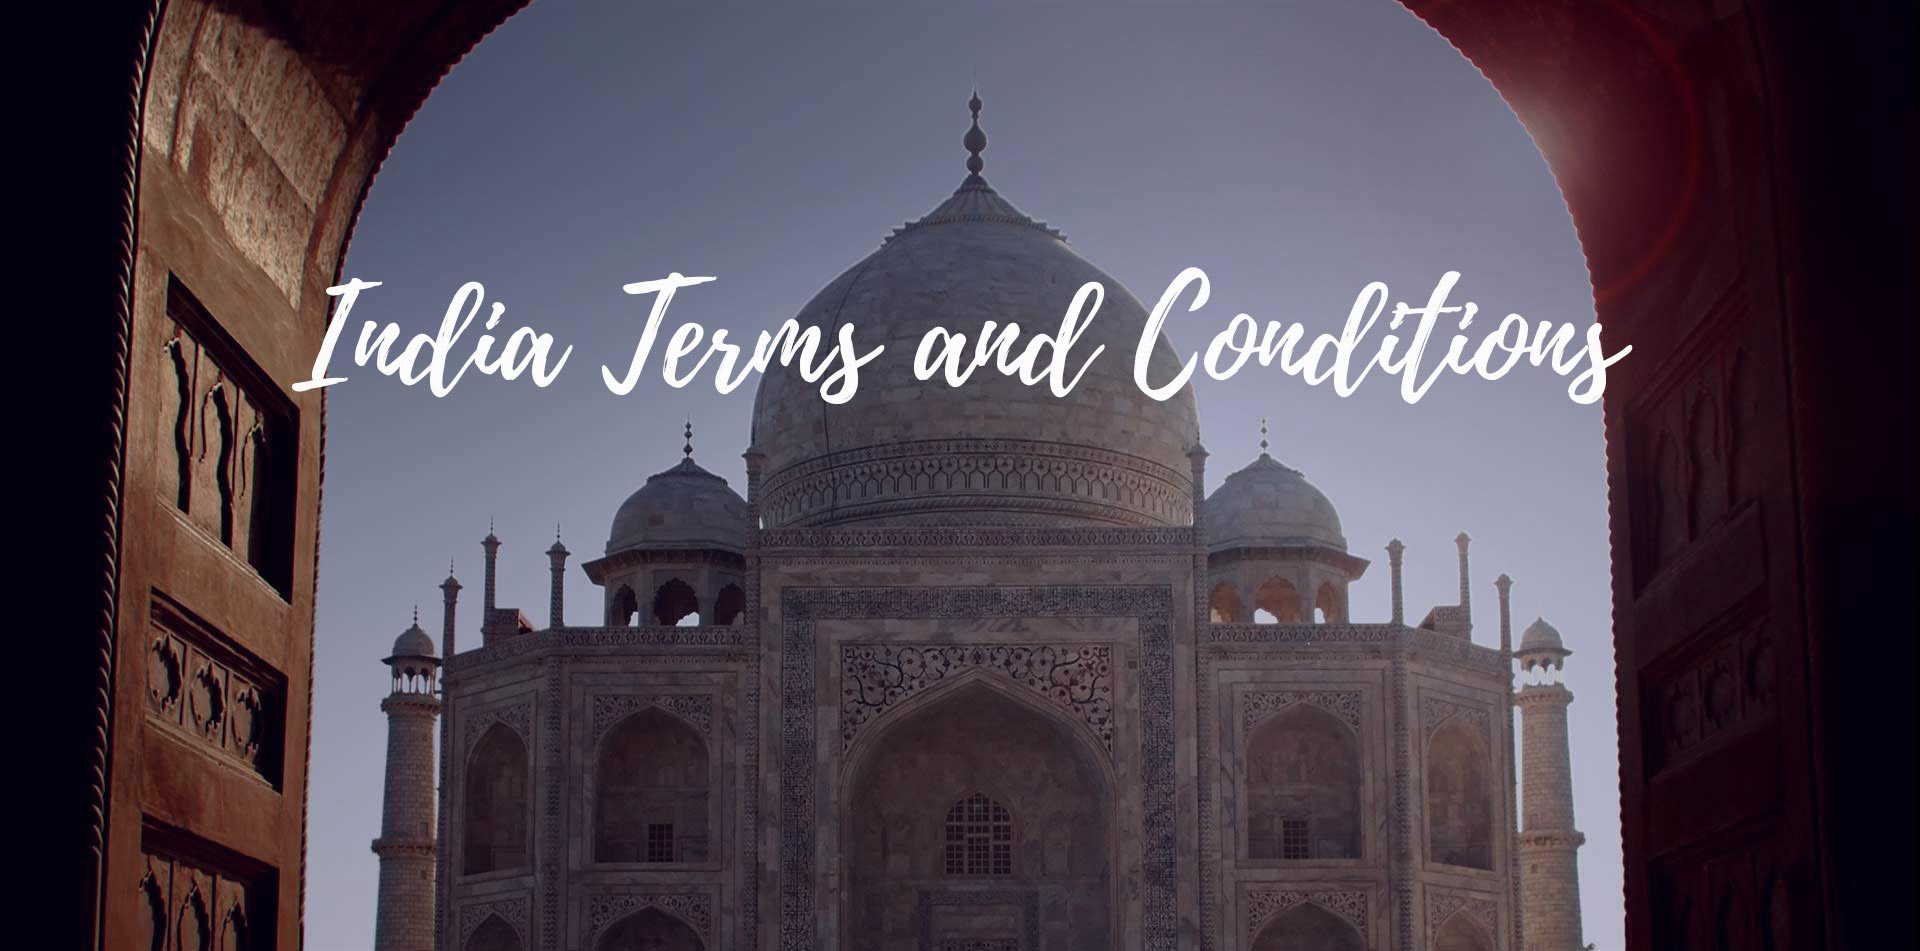 Asia India Agra Taj Mahal dome UNESCO world heritage site India Terms and Conditions - luxury vacation destinations